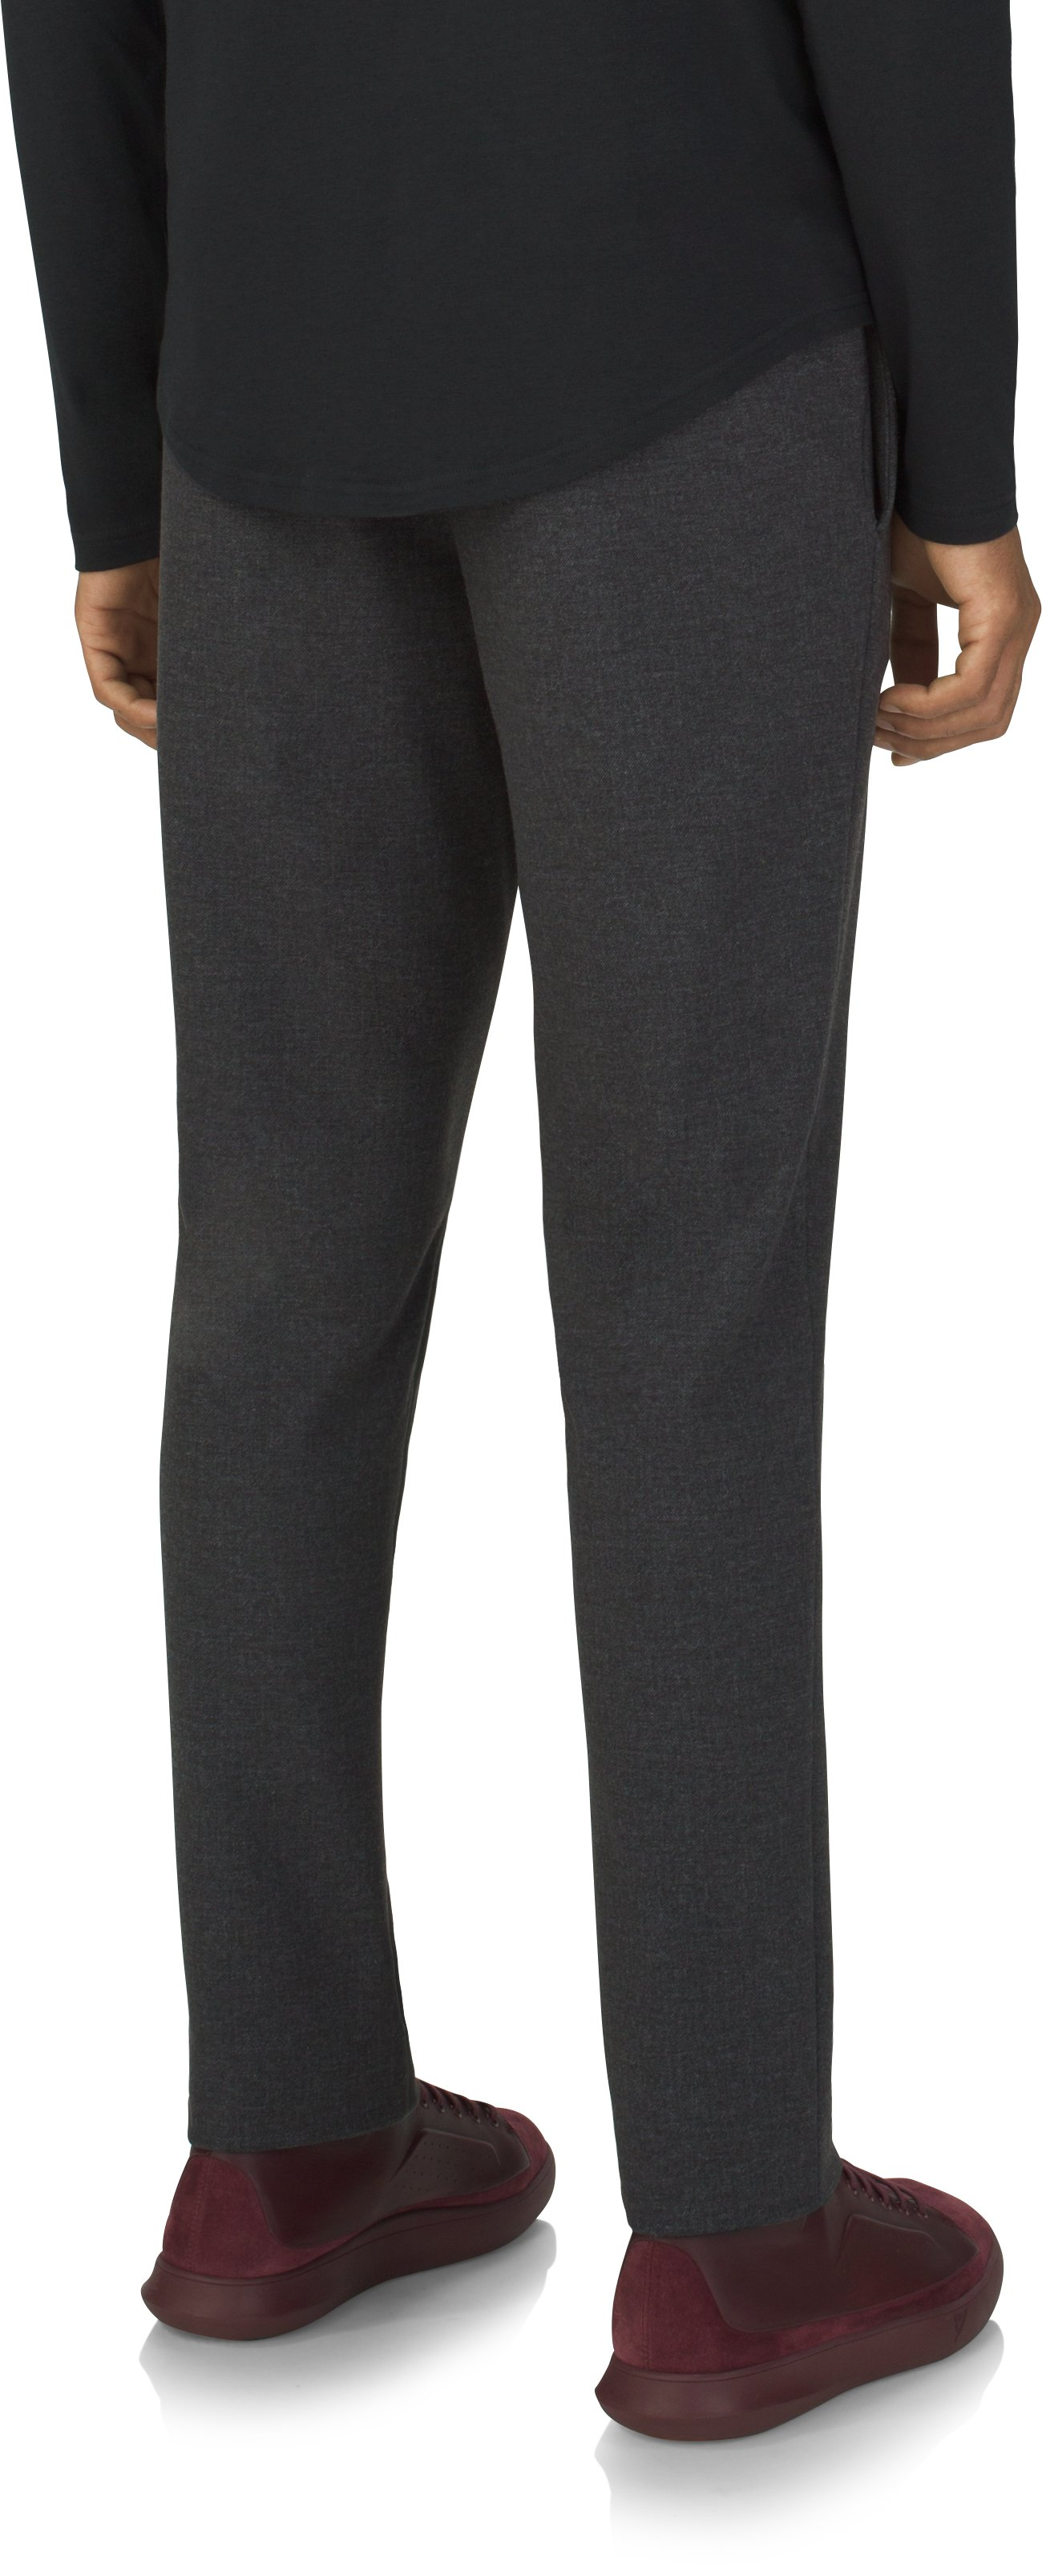 Men's UAS Rugby Suit Pants, DARK HEATHER GRAY,